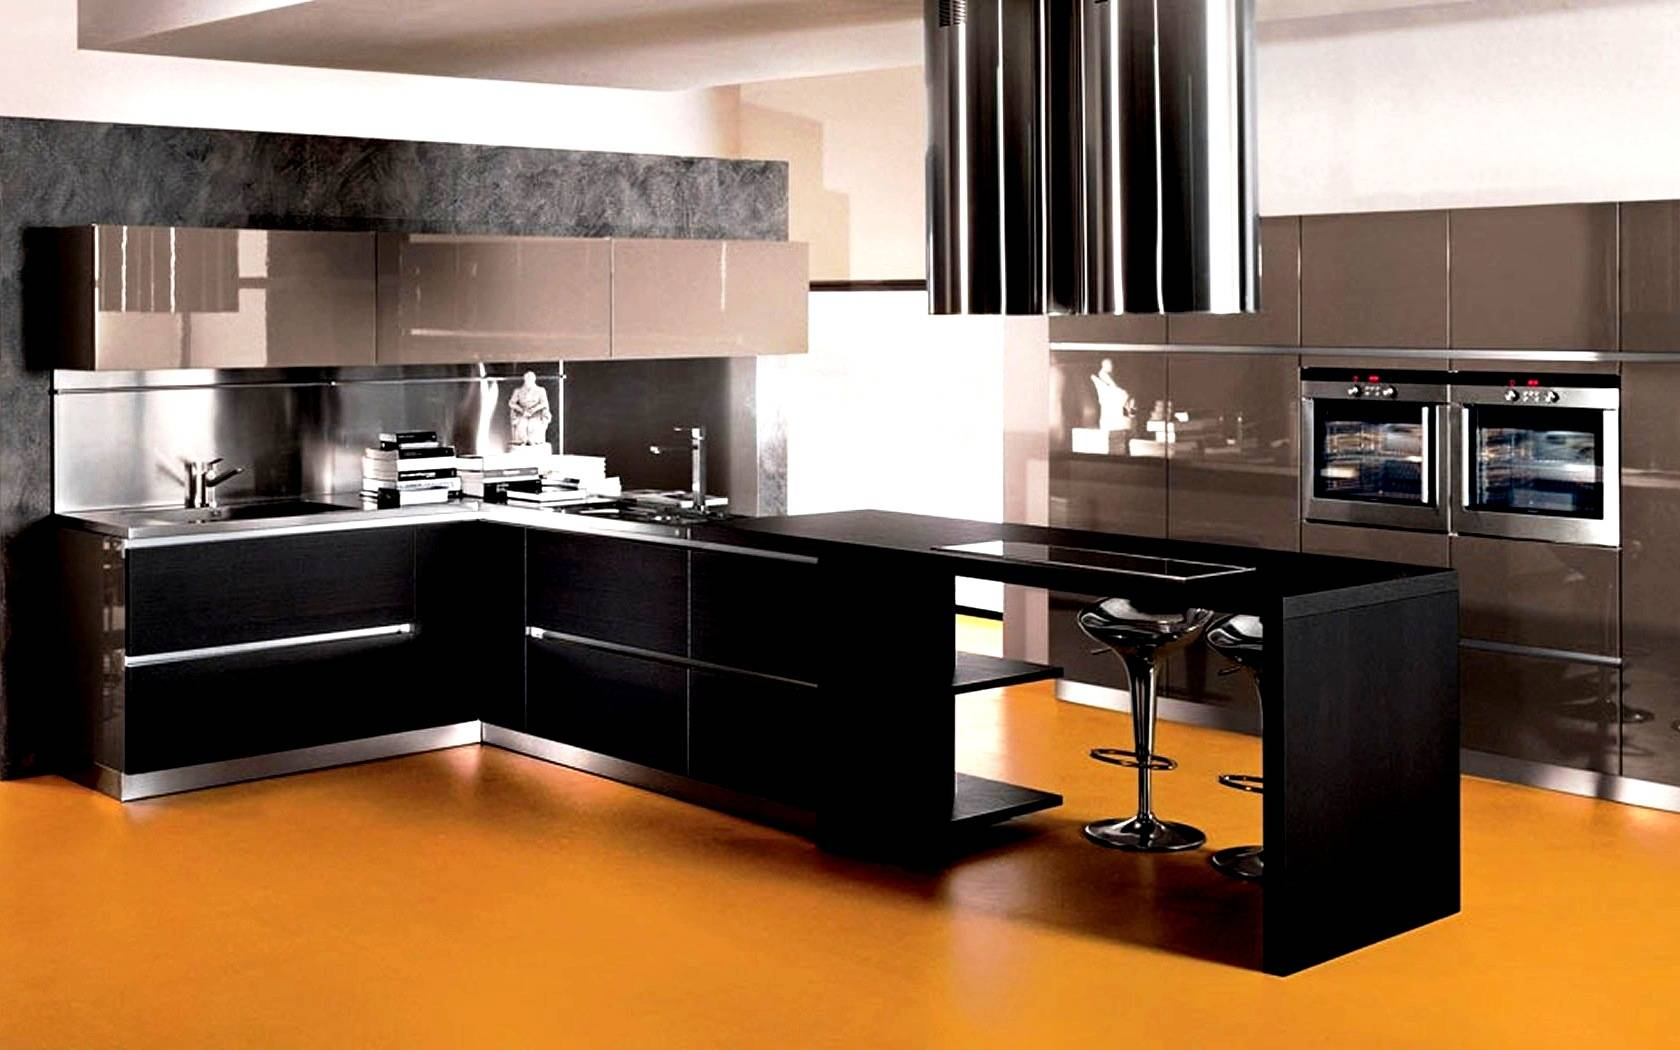 modular-kitchen-wallpapers-11